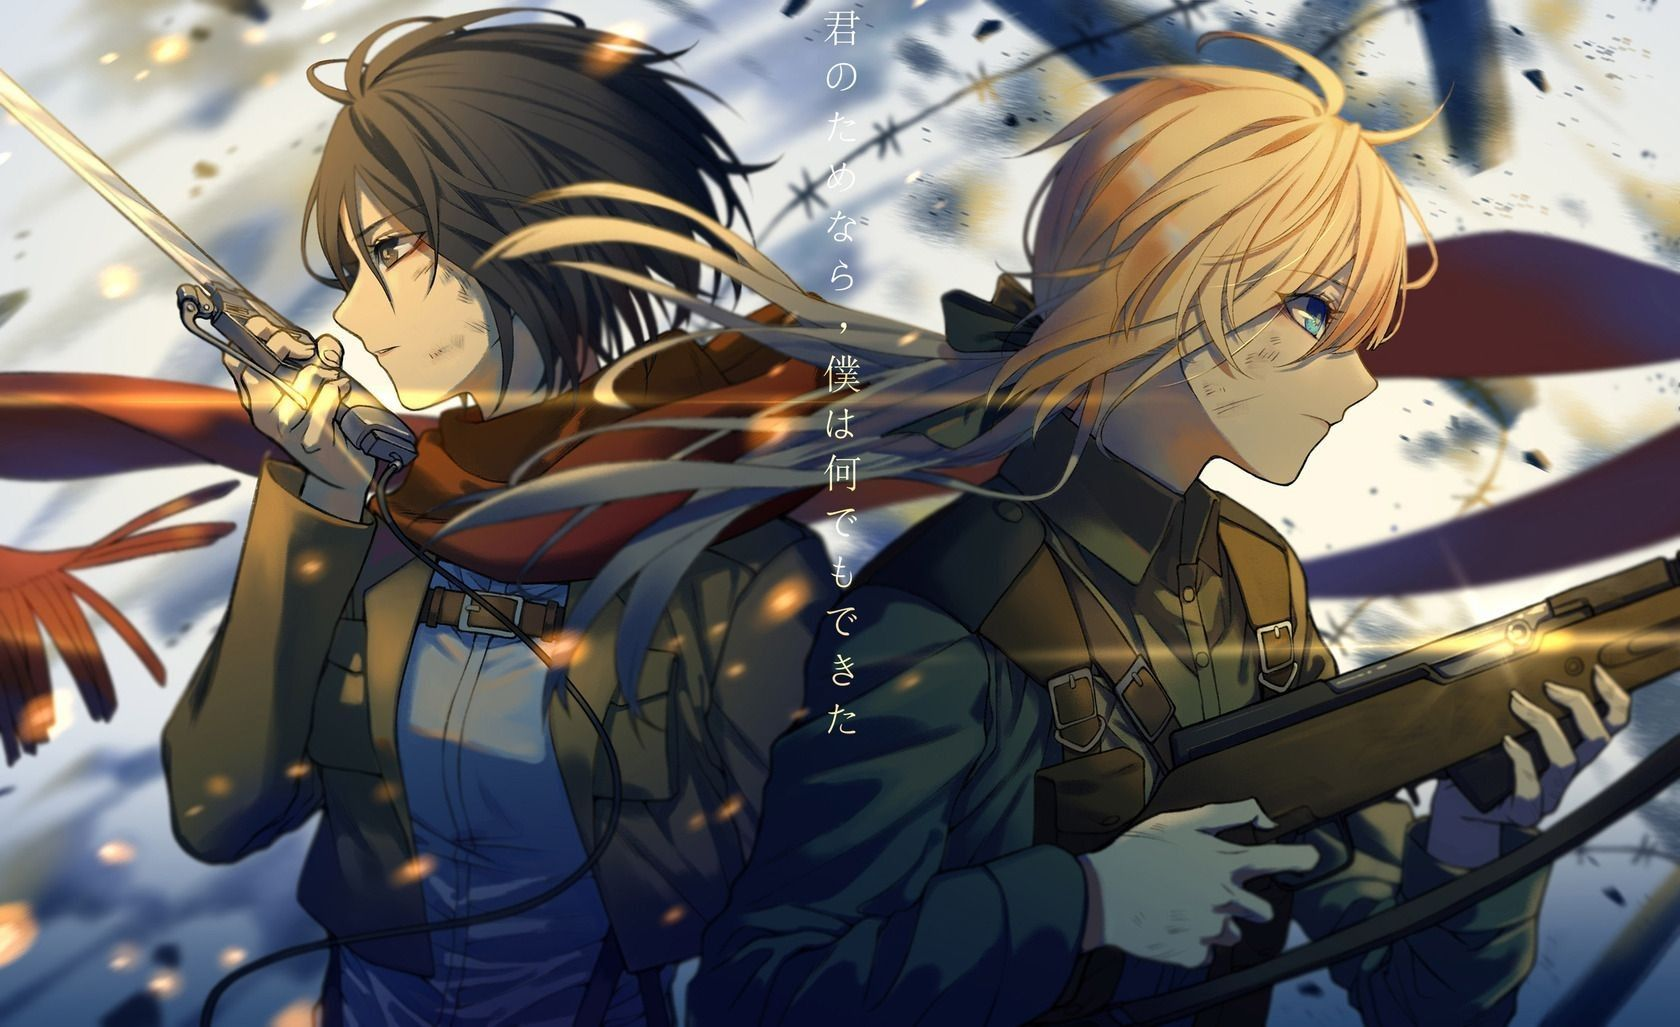 mikasa ackerman and violet evergarden Violet evergreen